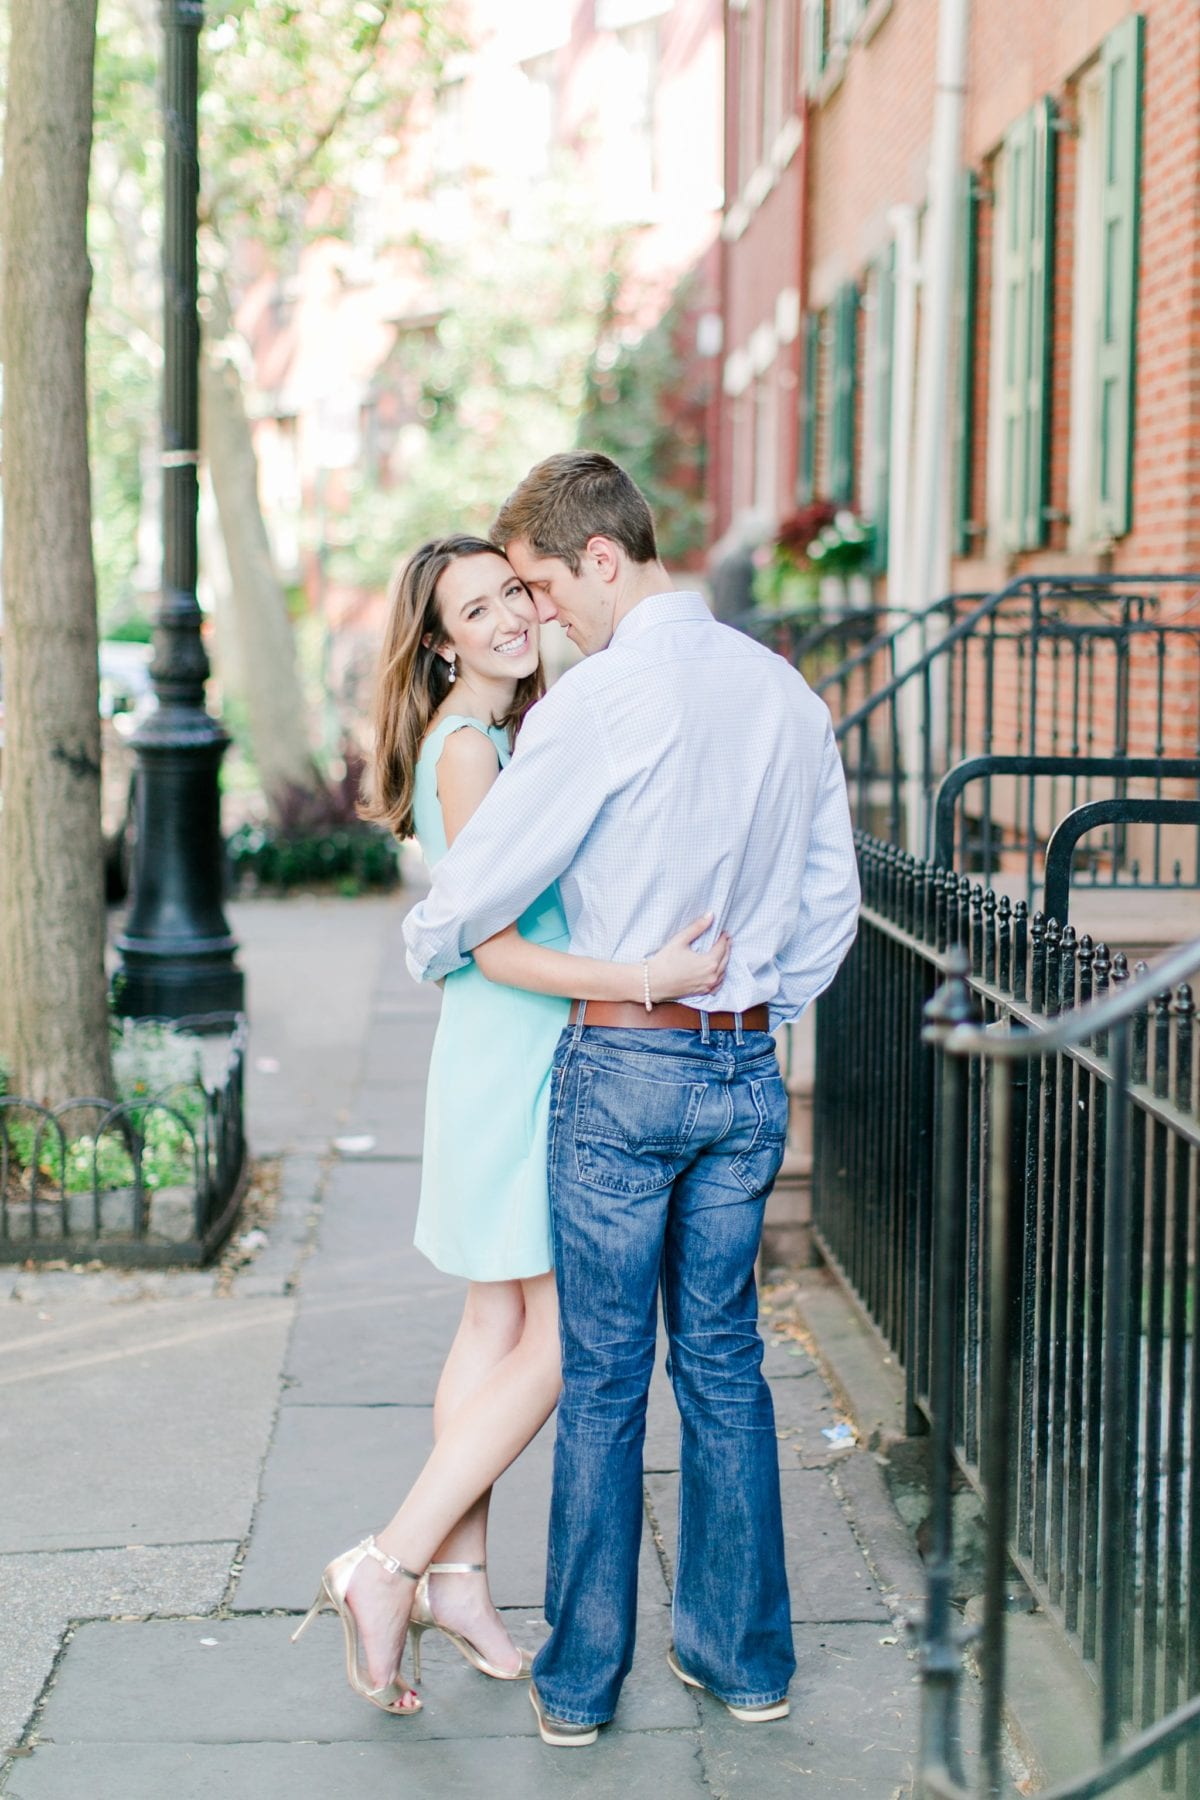 West Village Central Park Engagement Photos NYC Wedding Photographer Megan Kelsey Photography-66.jpg